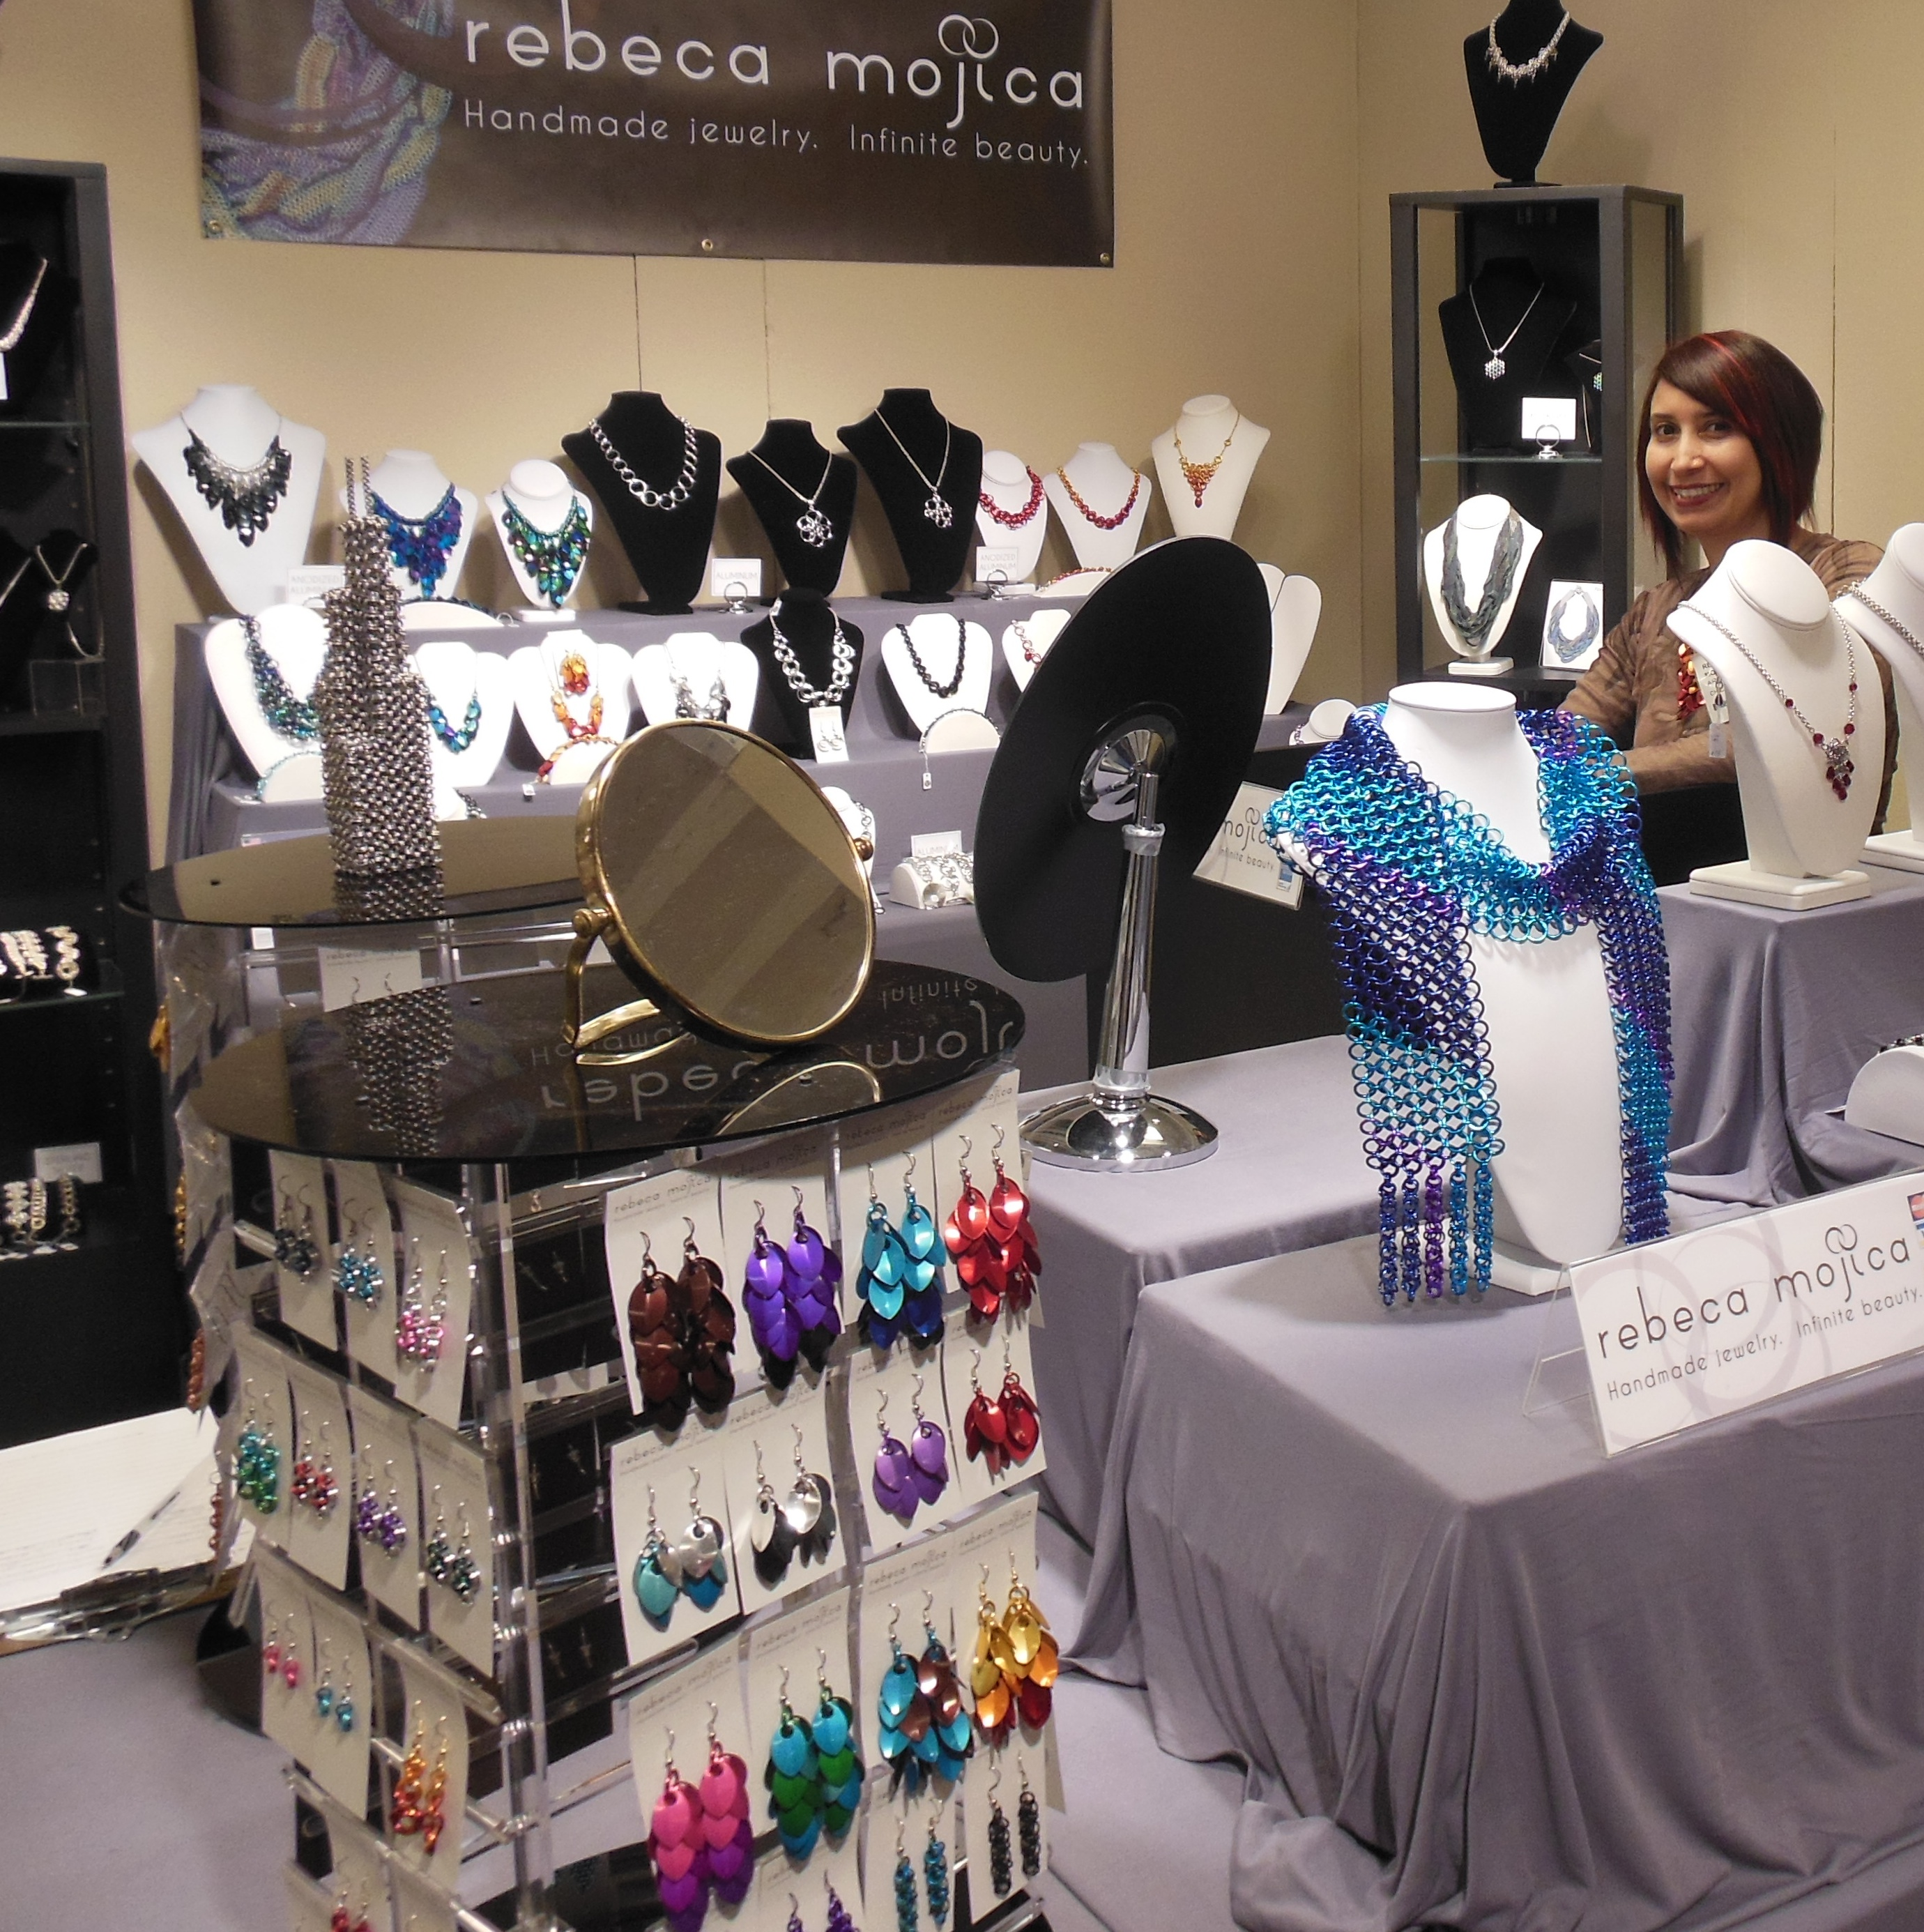 What Jewelry Should I Make To Sell At A Craft Fair?